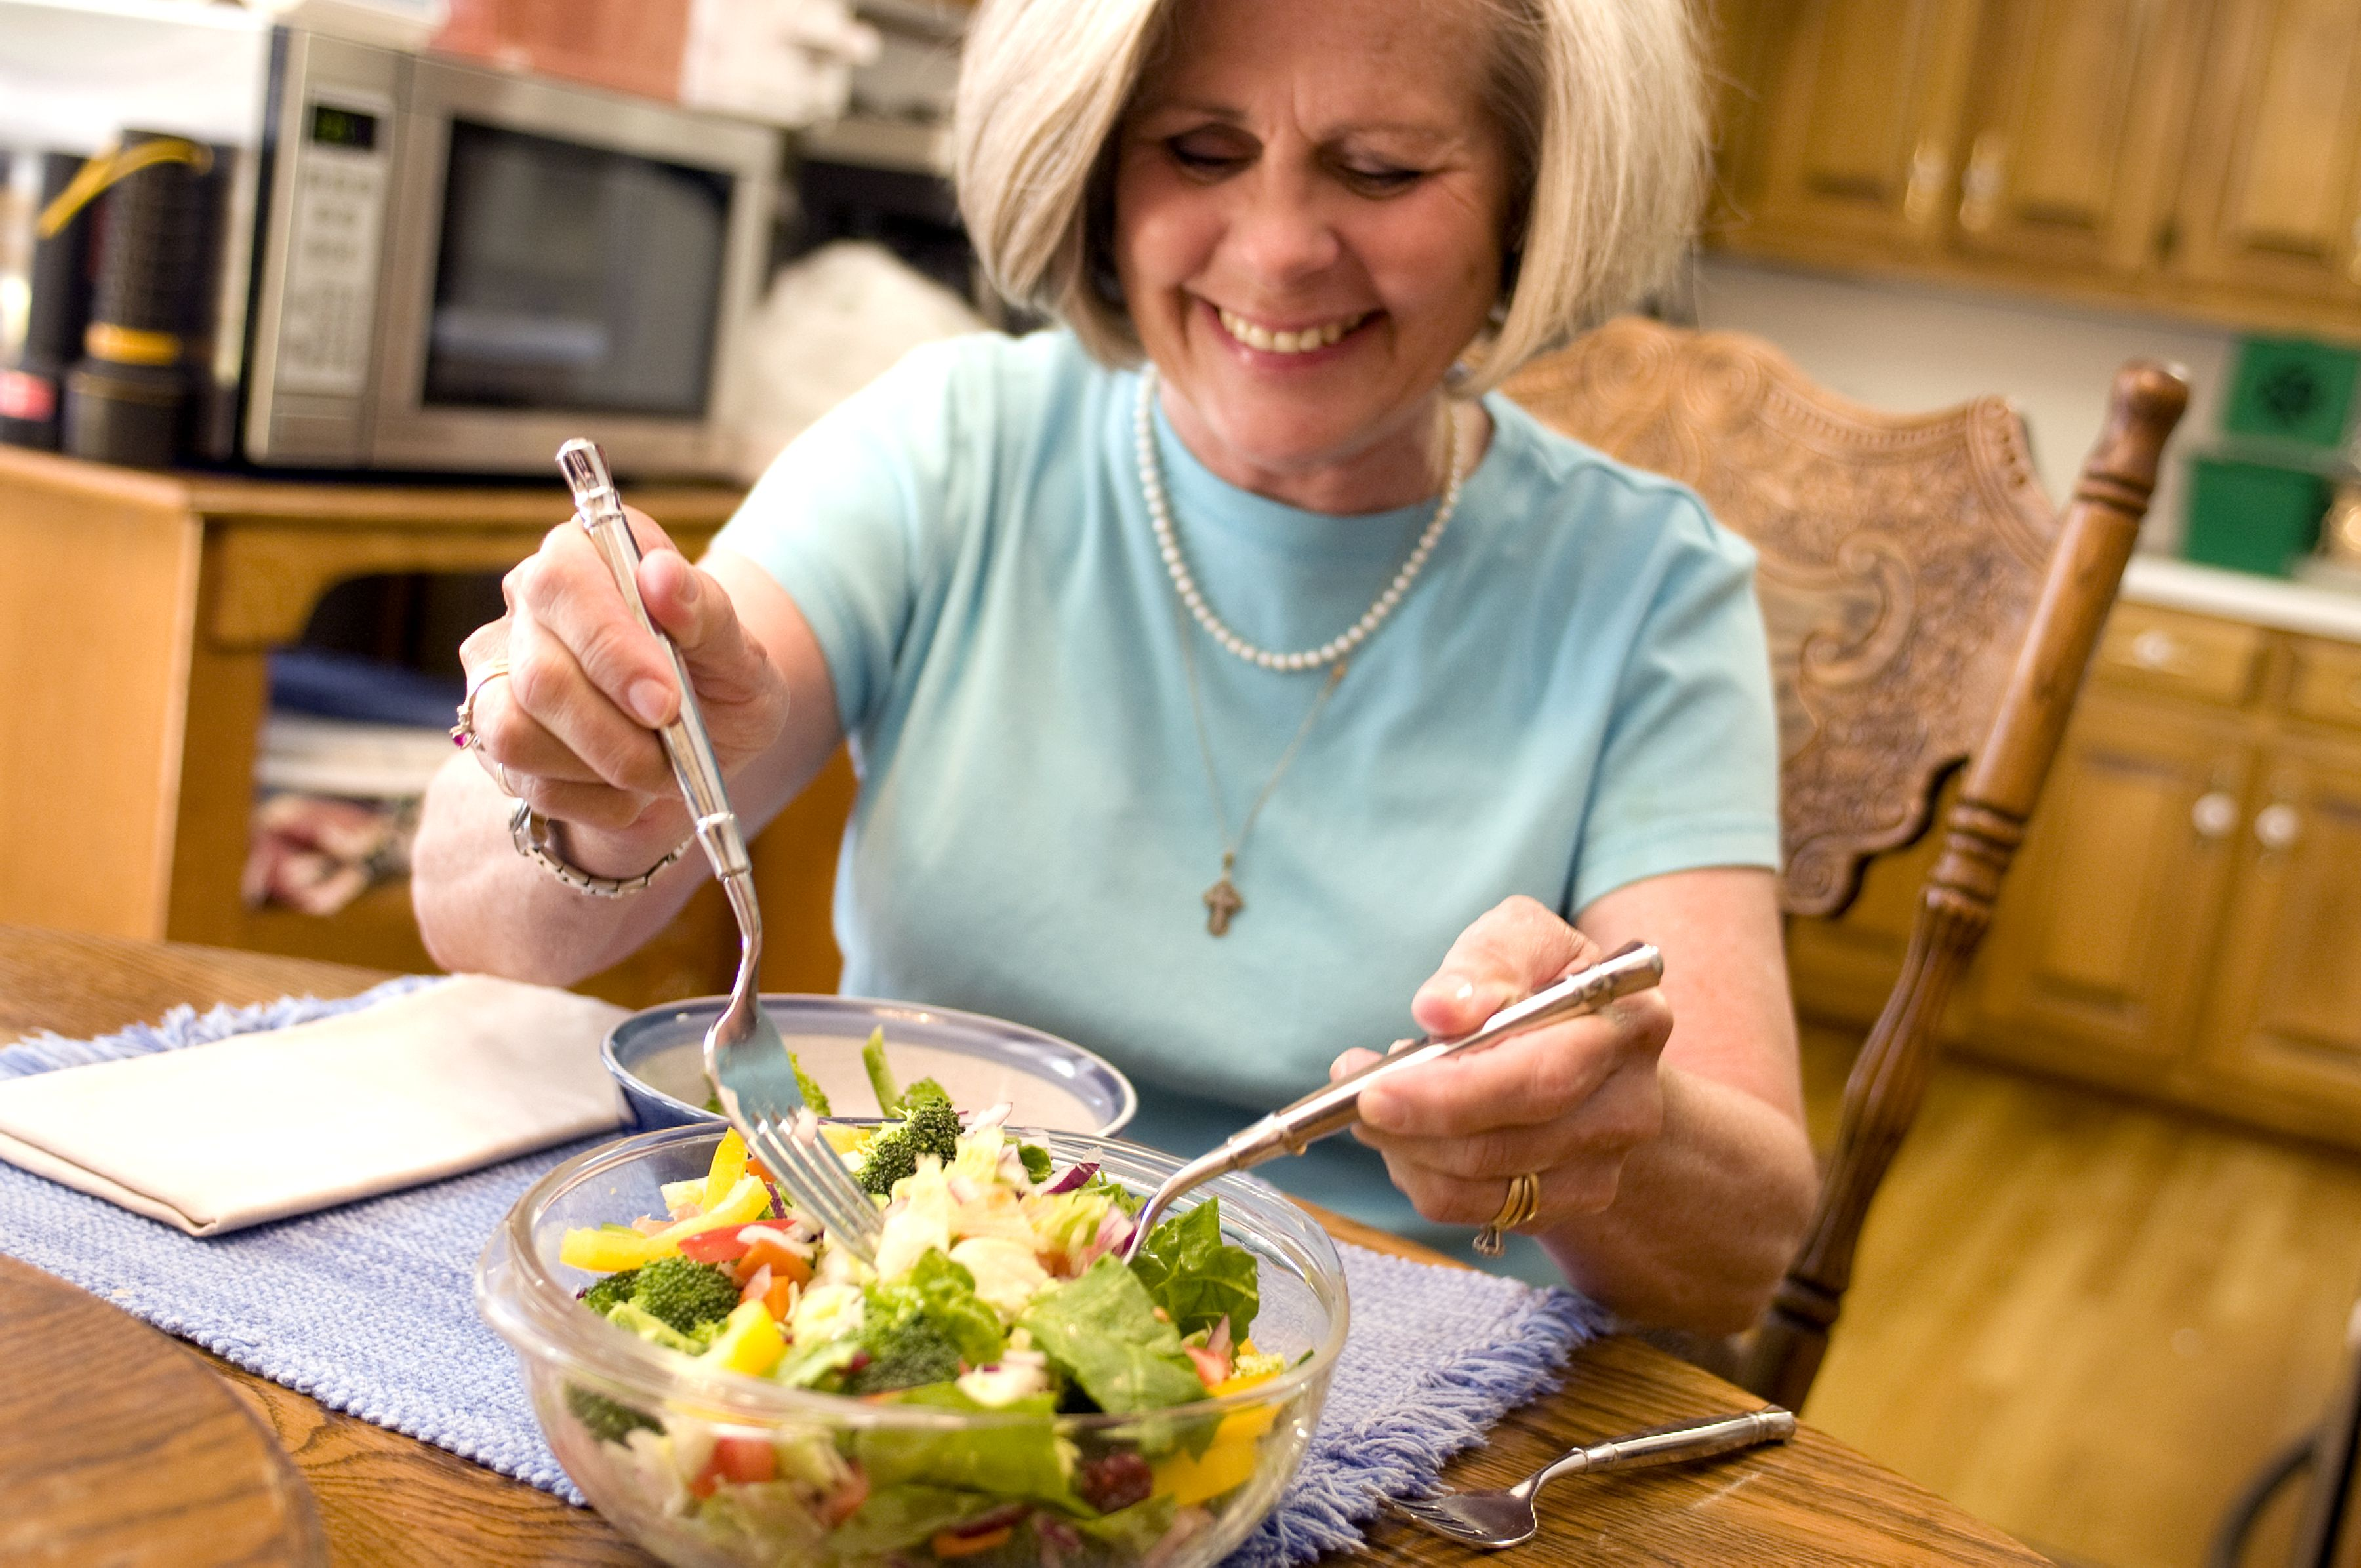 Small Eat In Kitchen Table Free Picture Happy Woman Eating Vegetable Salad